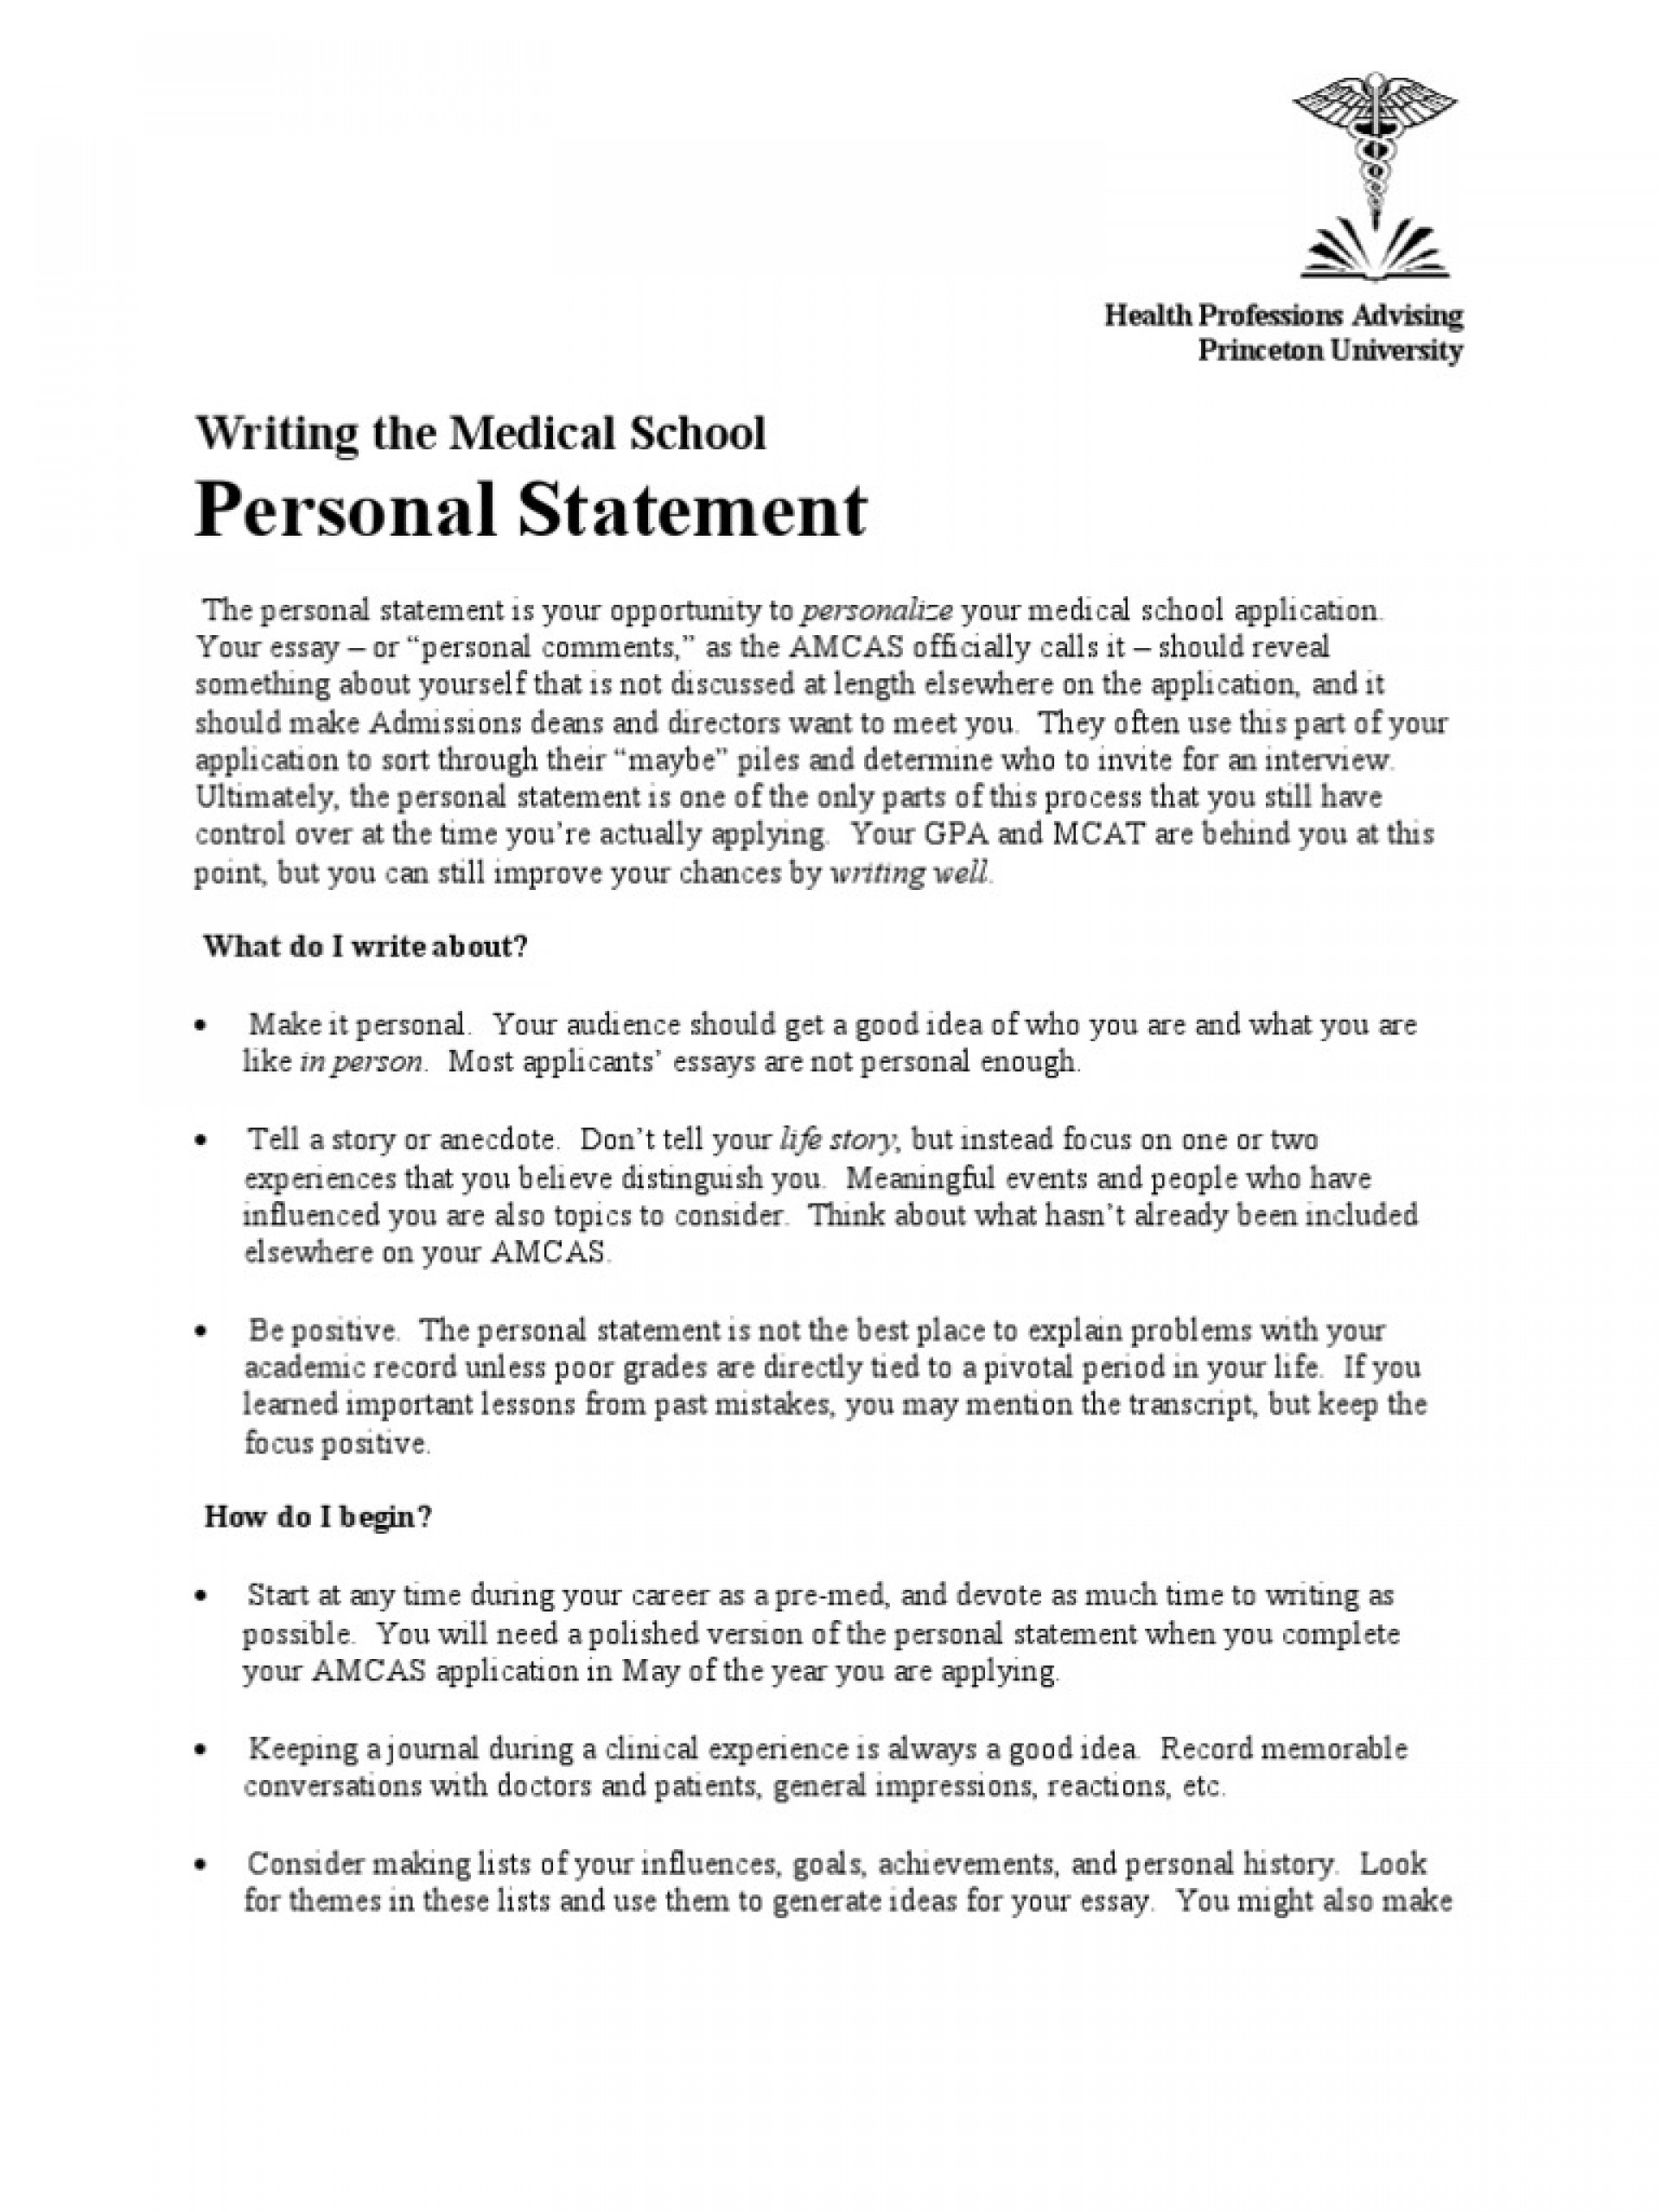 020 Writing The Personal Statement Princeton Medical S 57604e71b6d87f03a78b47aa Essay Example Why Career Is Important In Our Frightening Life 1920